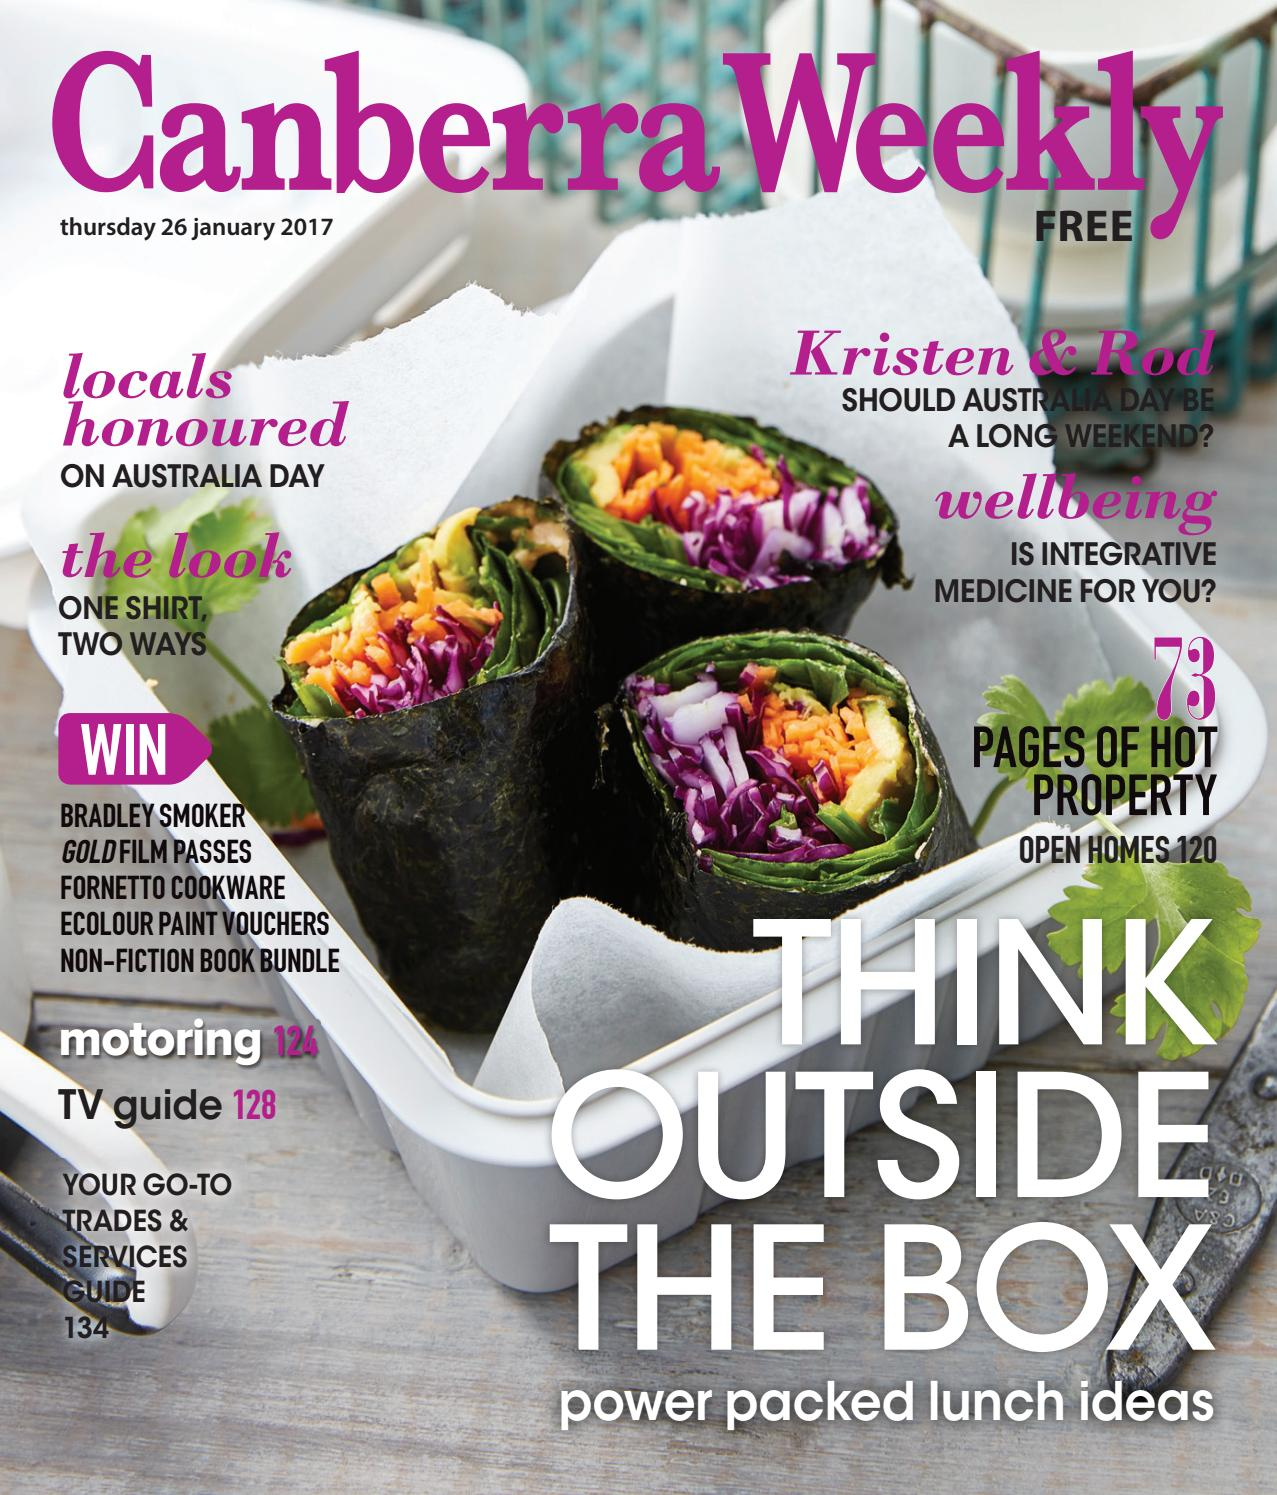 fd13a3b8bfb 26 January 2017 by Canberra Weekly Magazine - issuu